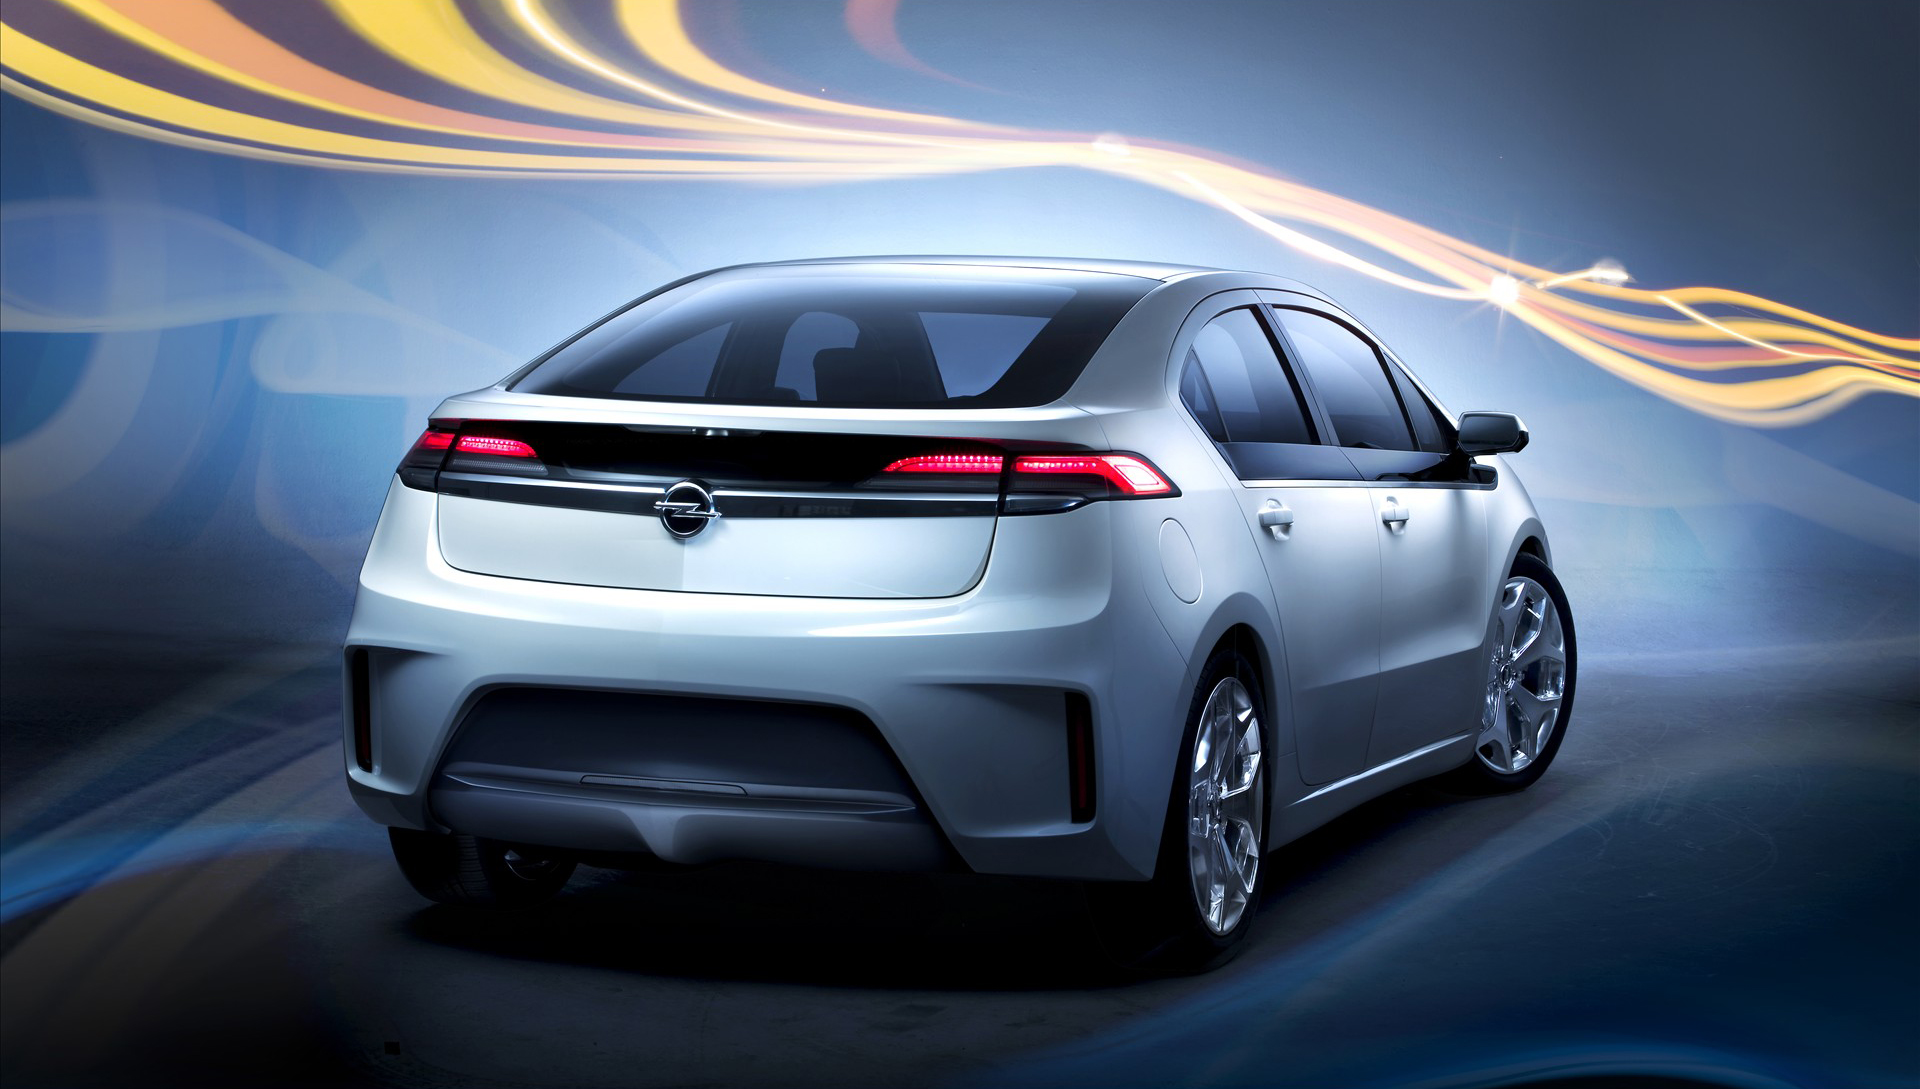 2012 Opel Ampera widescreen 9 Opel Ampera Famous for Sophisticated Glossy Car Design